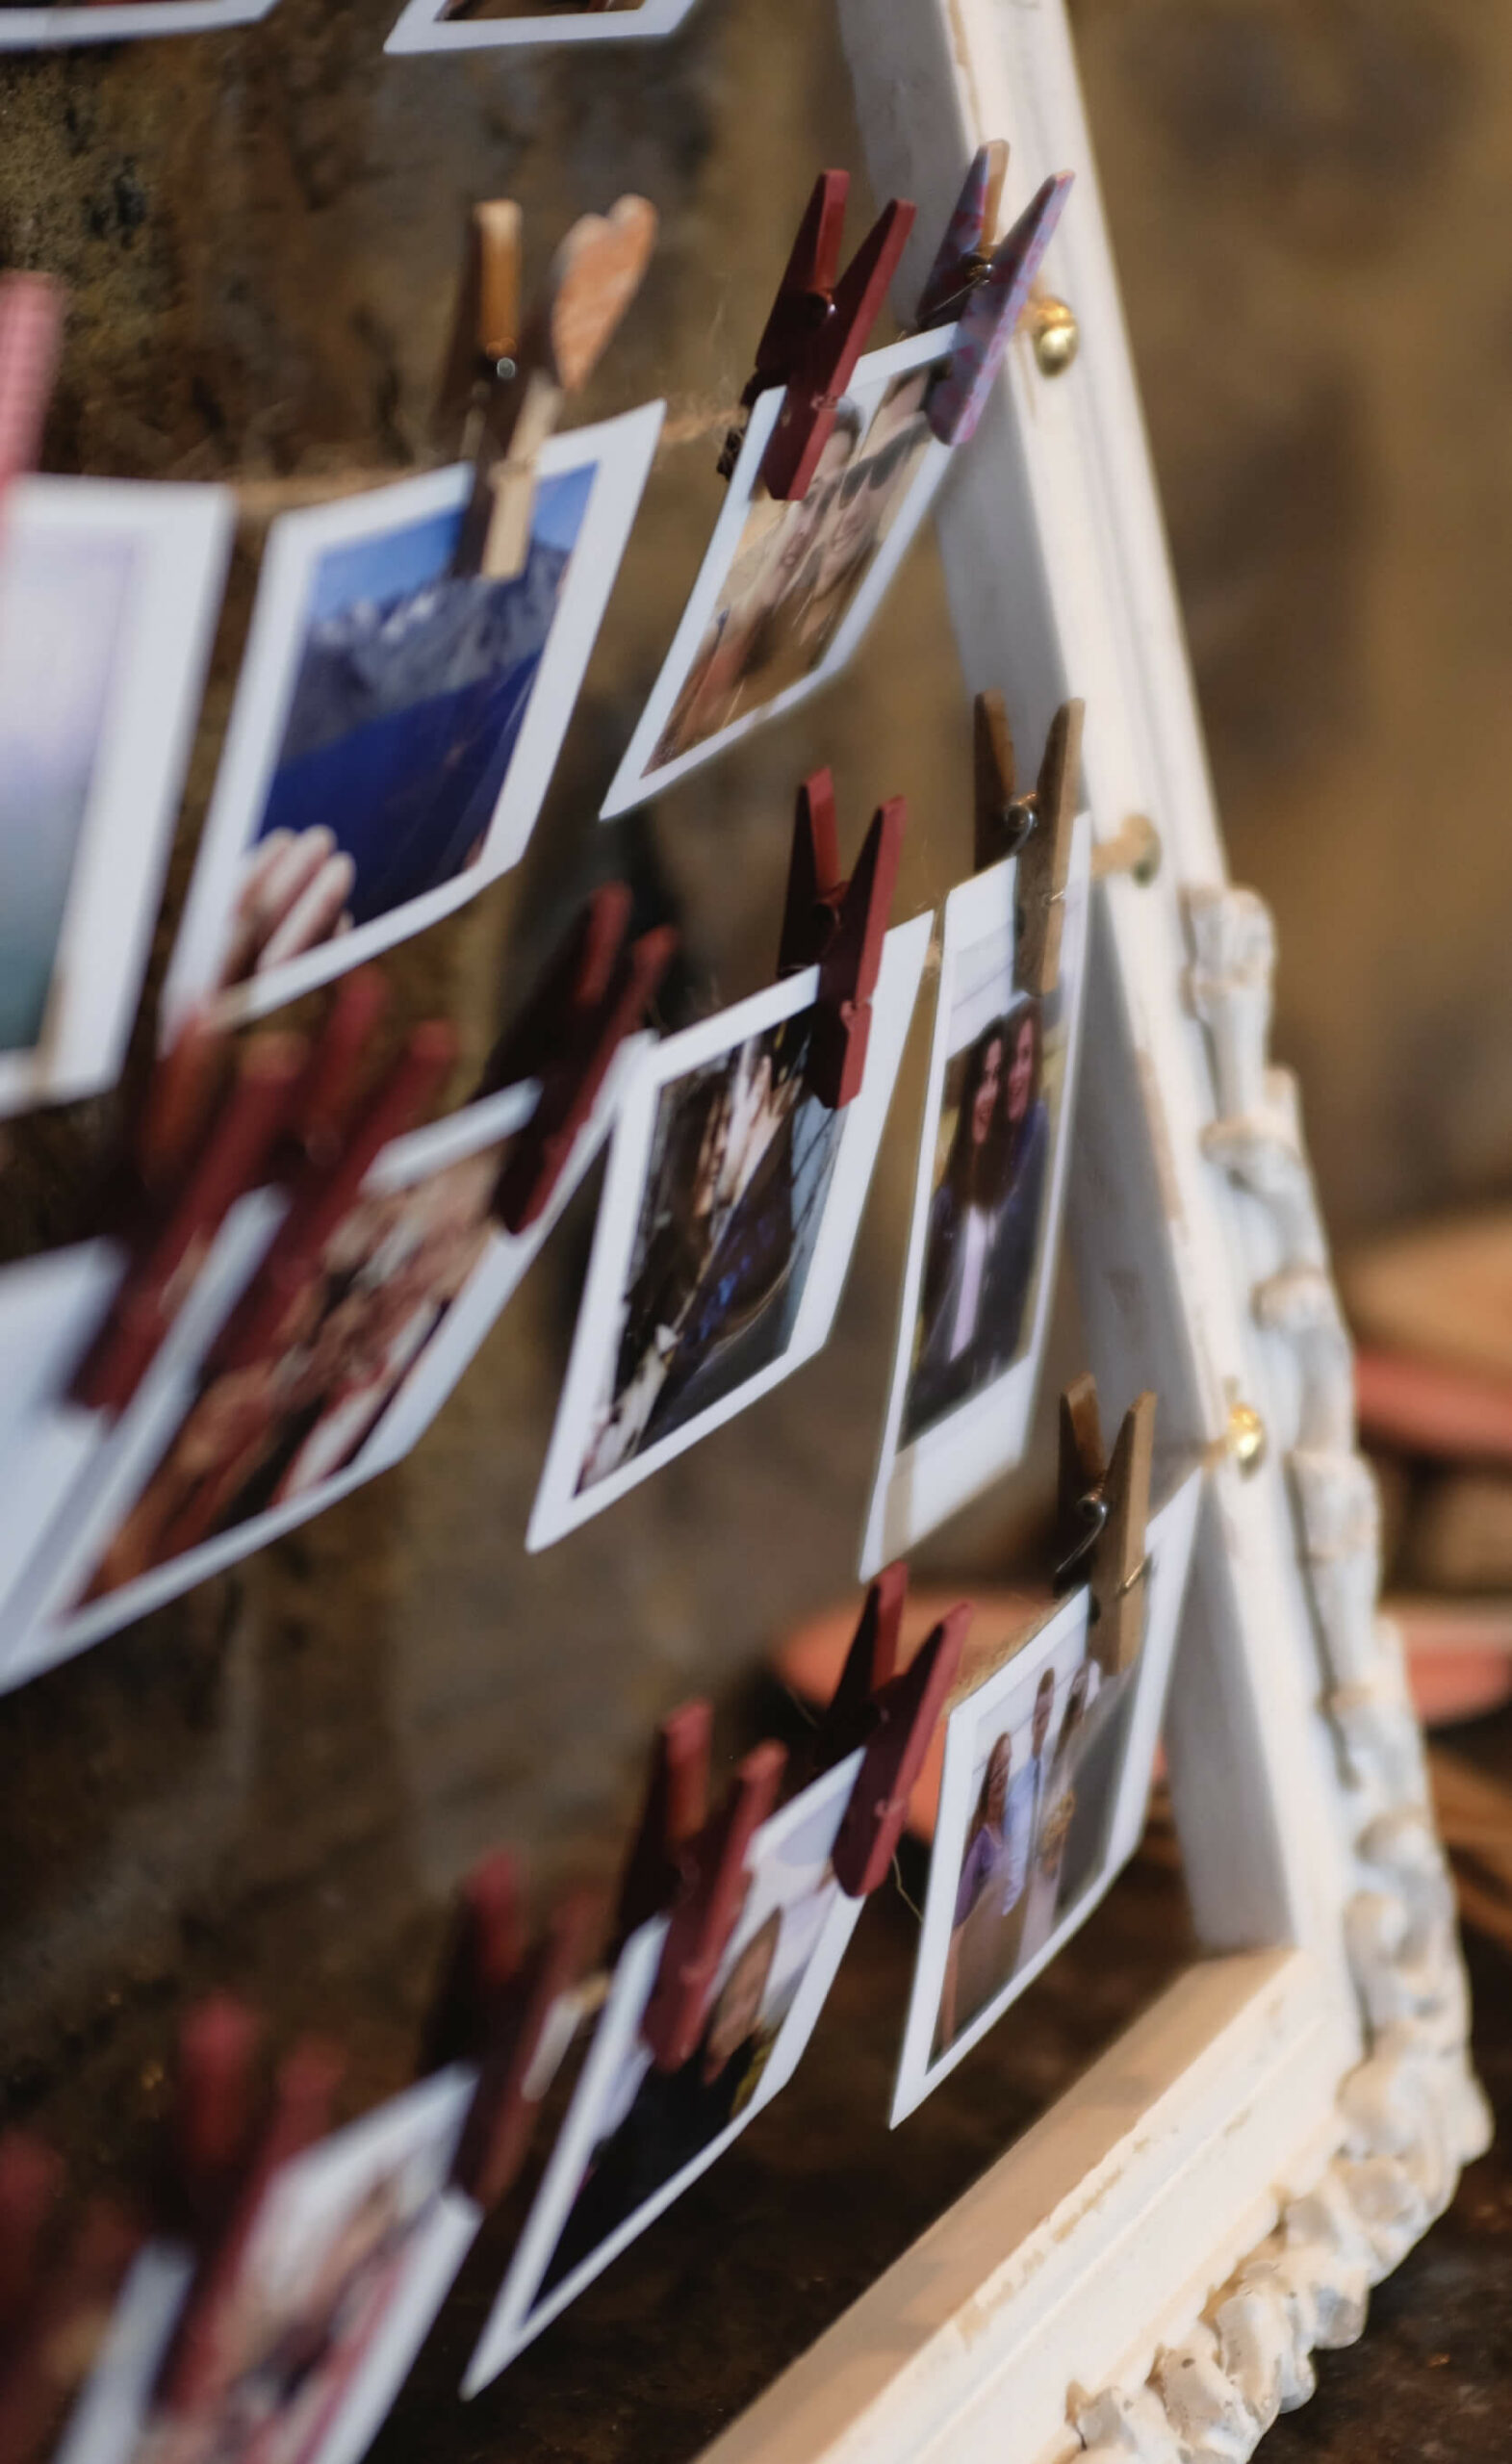 image of several photographs hanging up with clips